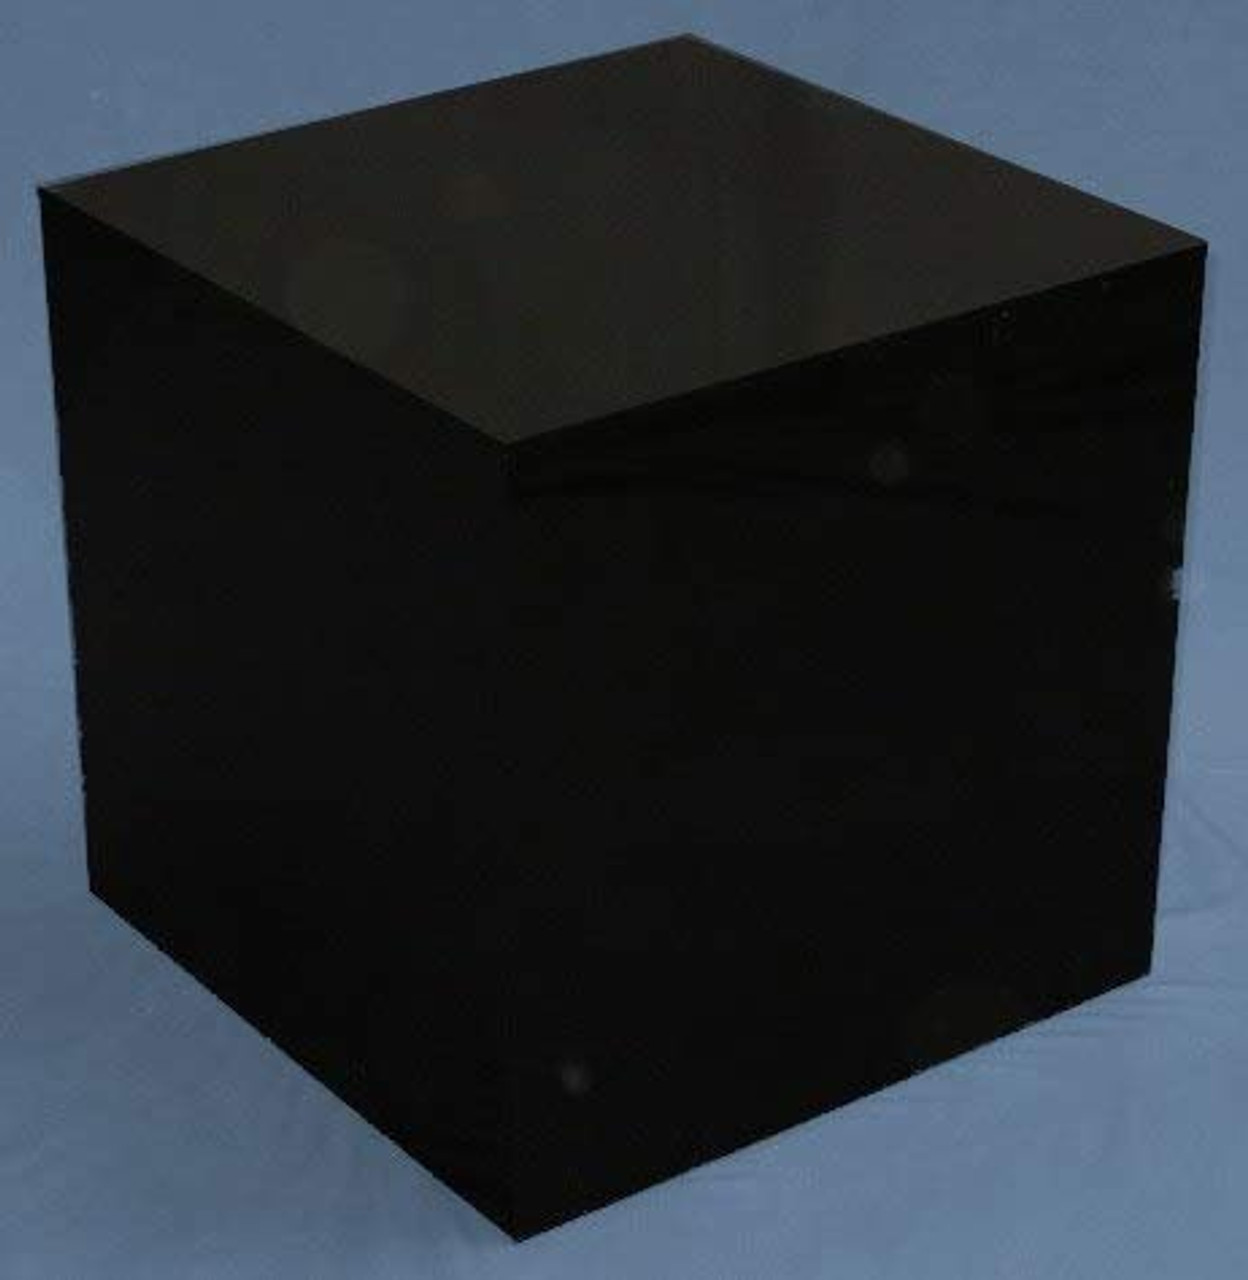 Black Large Square Acrylic Display Cube, 18 Inch